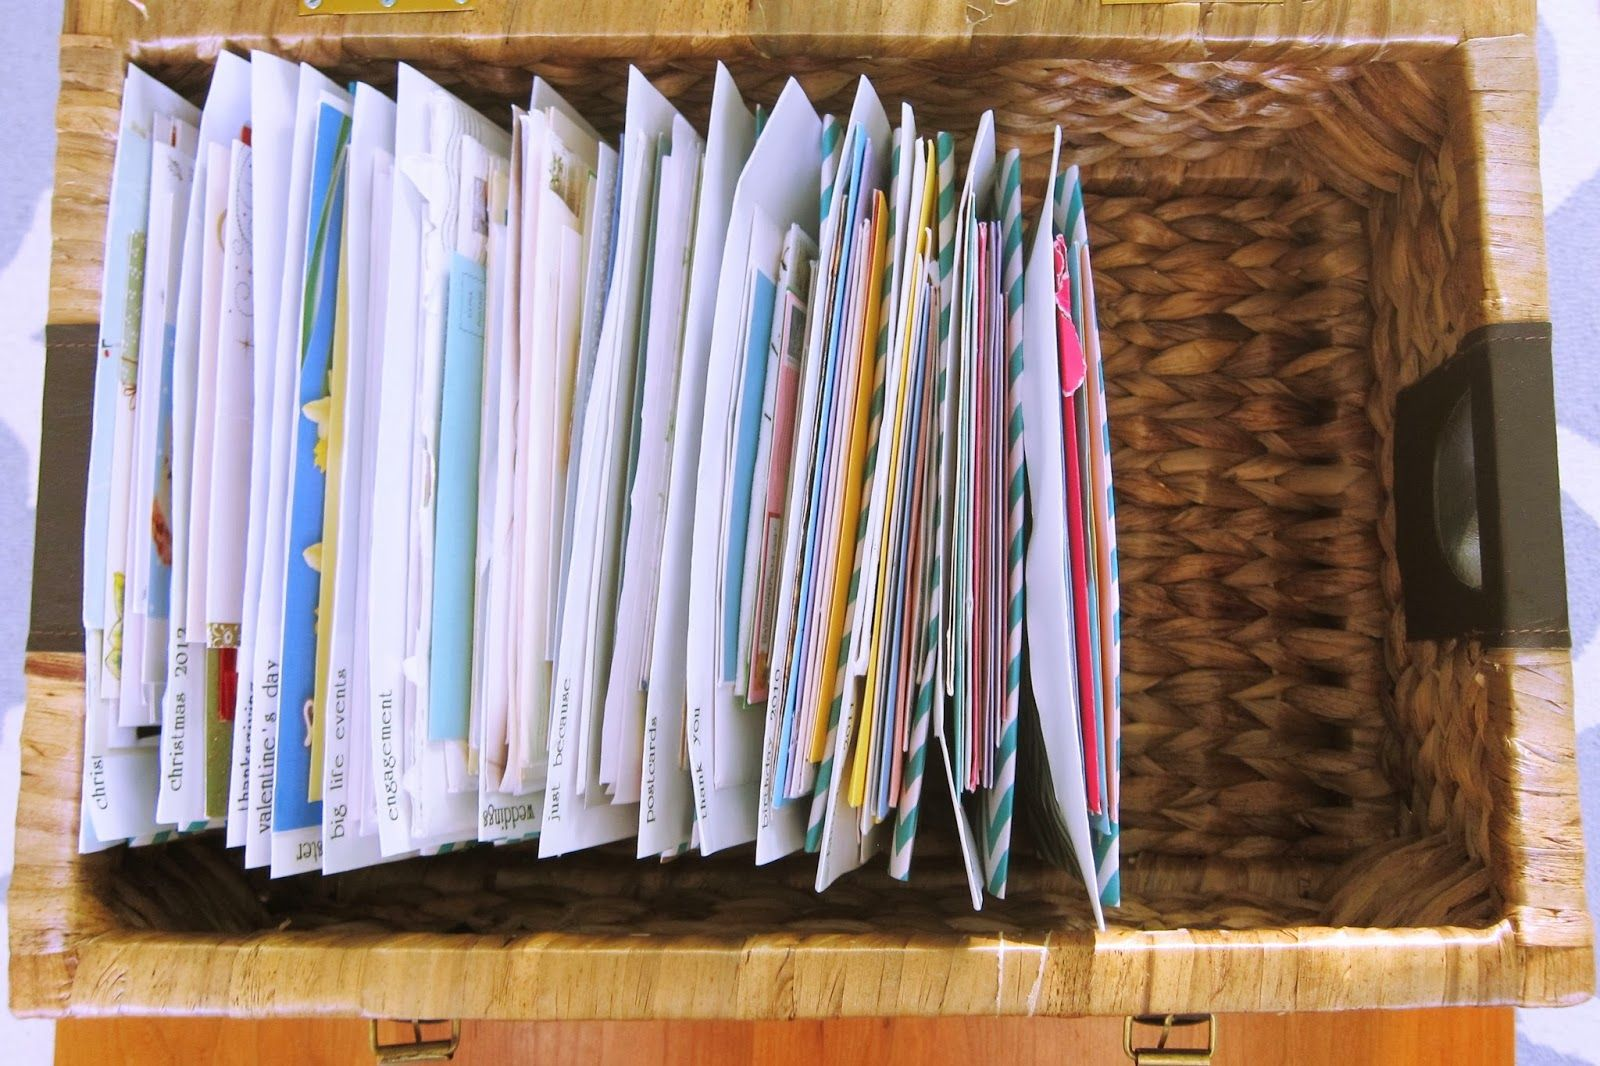 How To Organize Greeting Card Mementos Old Gift Cards Notes Organizing Memorabilia Professional Organizer Paper Filing Advice